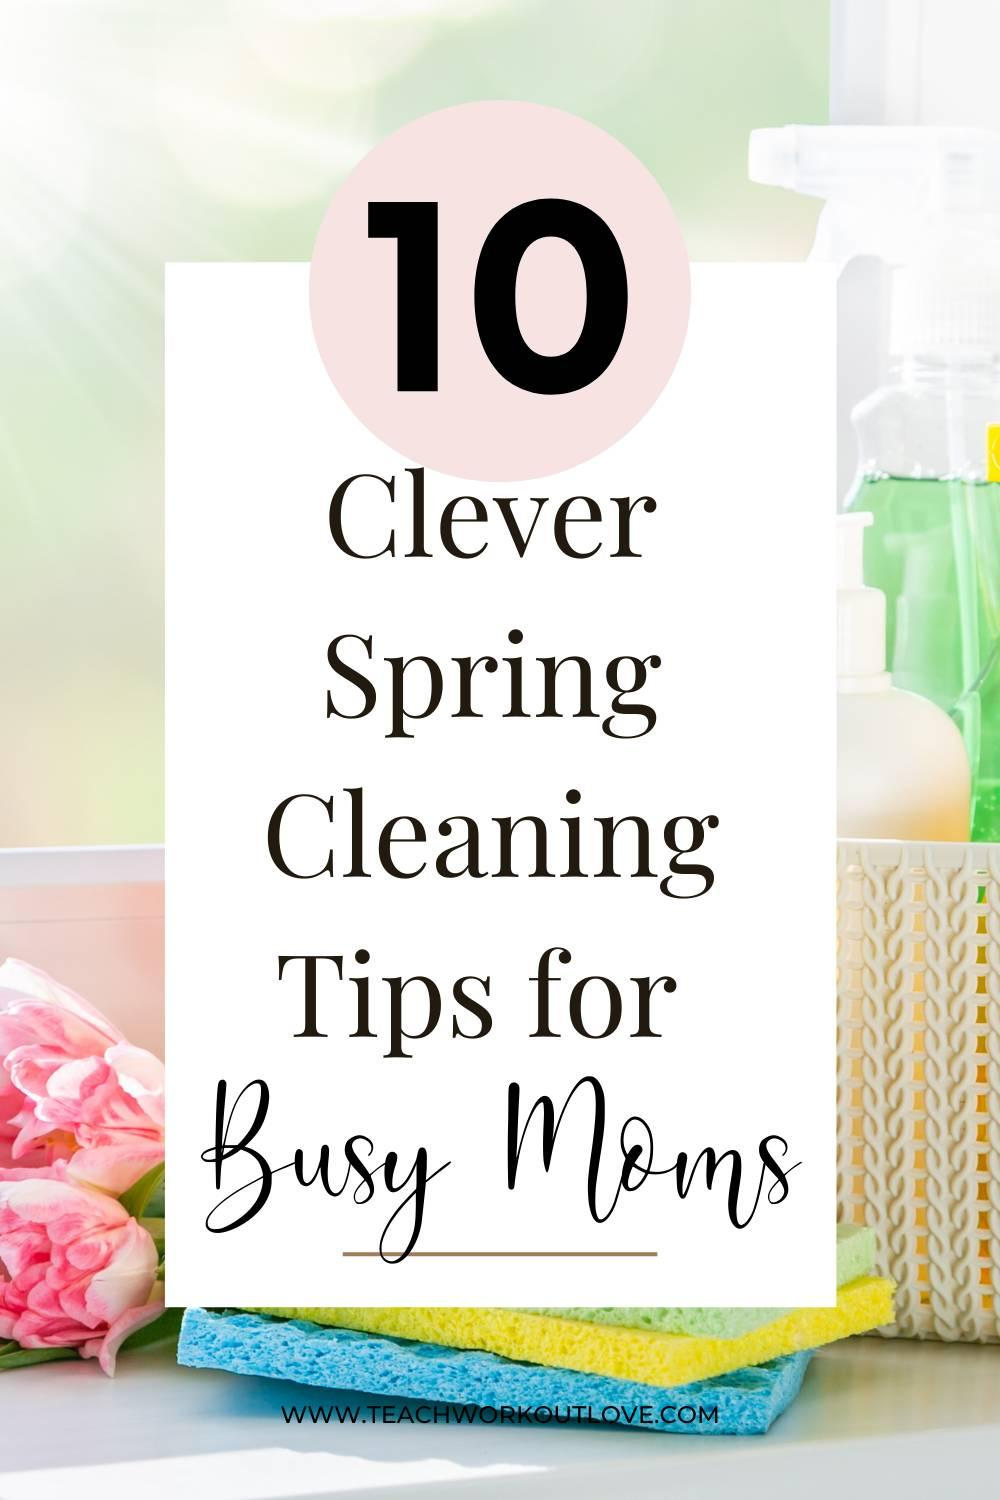 Spring is coming and it's that time again for a deep clean! Being a busy mom, we need spring cleaning tips to stick with! Read on for more: